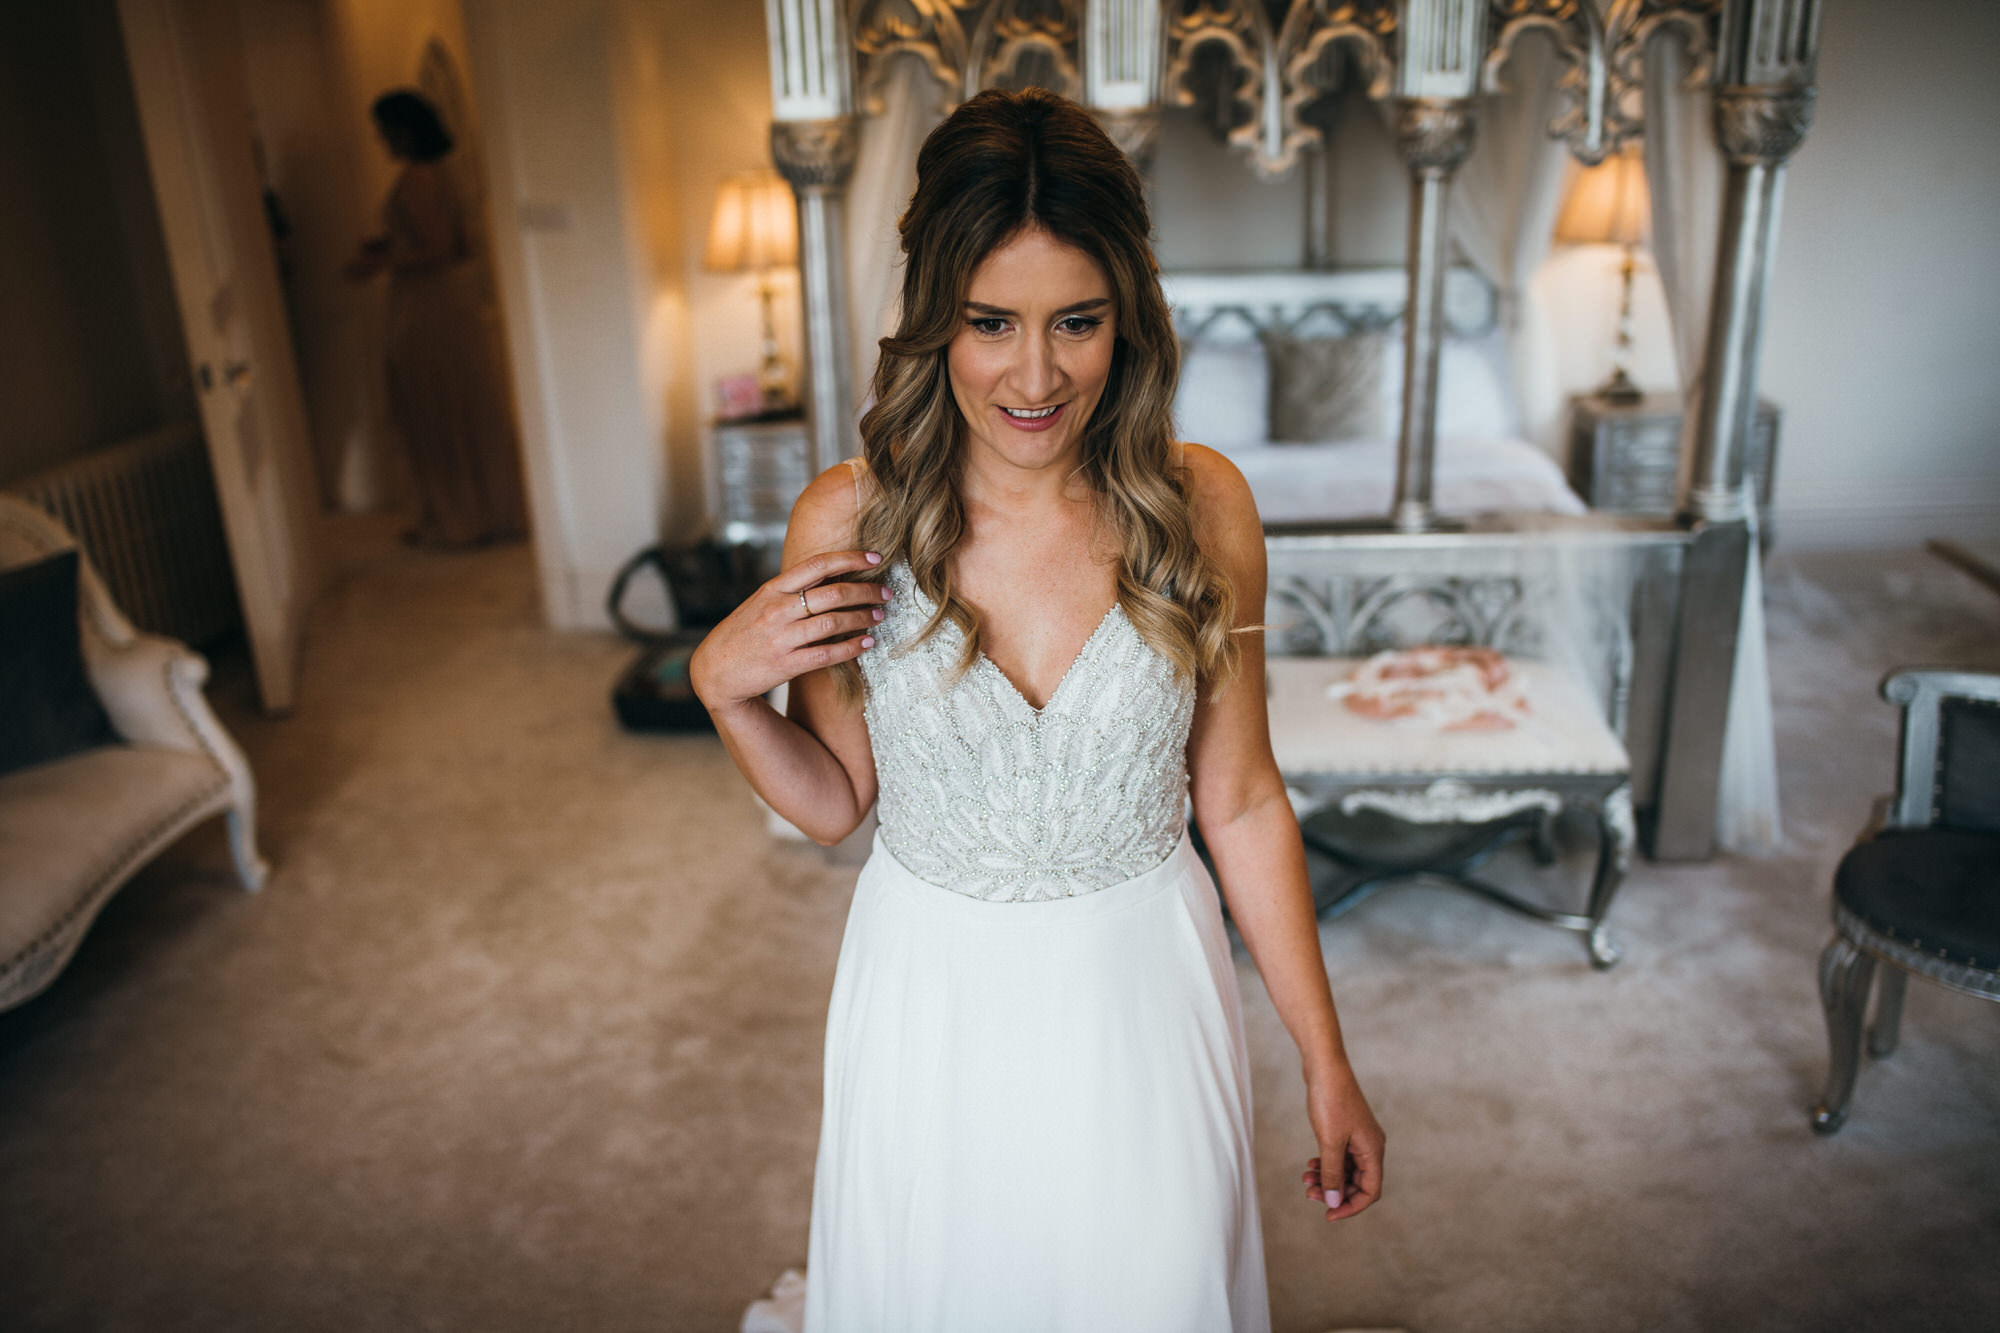 Manor by the lake wedding photographer 11